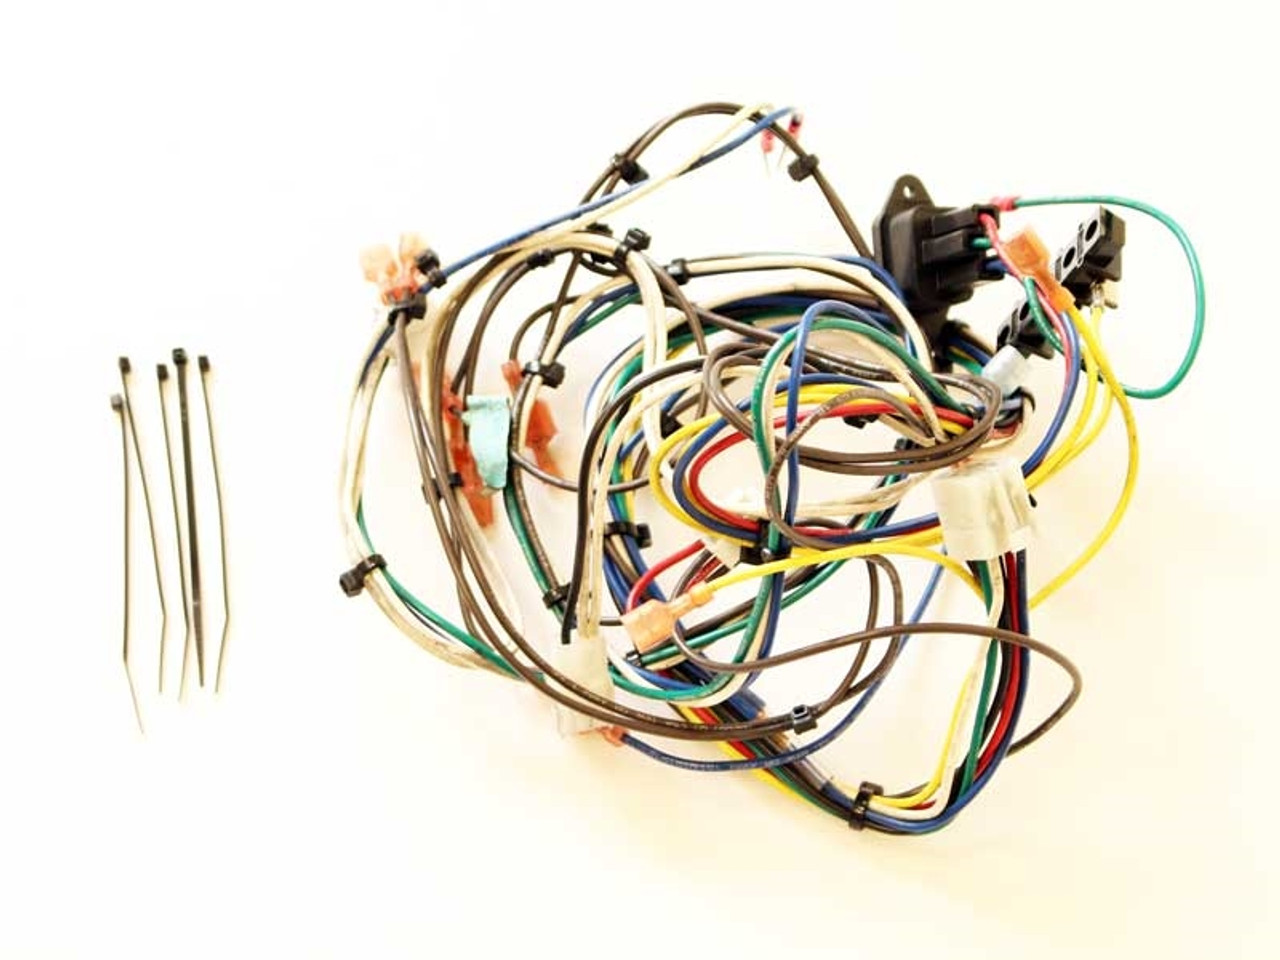 whitfield advantage ii-t classic wiring harness- 12158811 pellet stove wiring diagrams